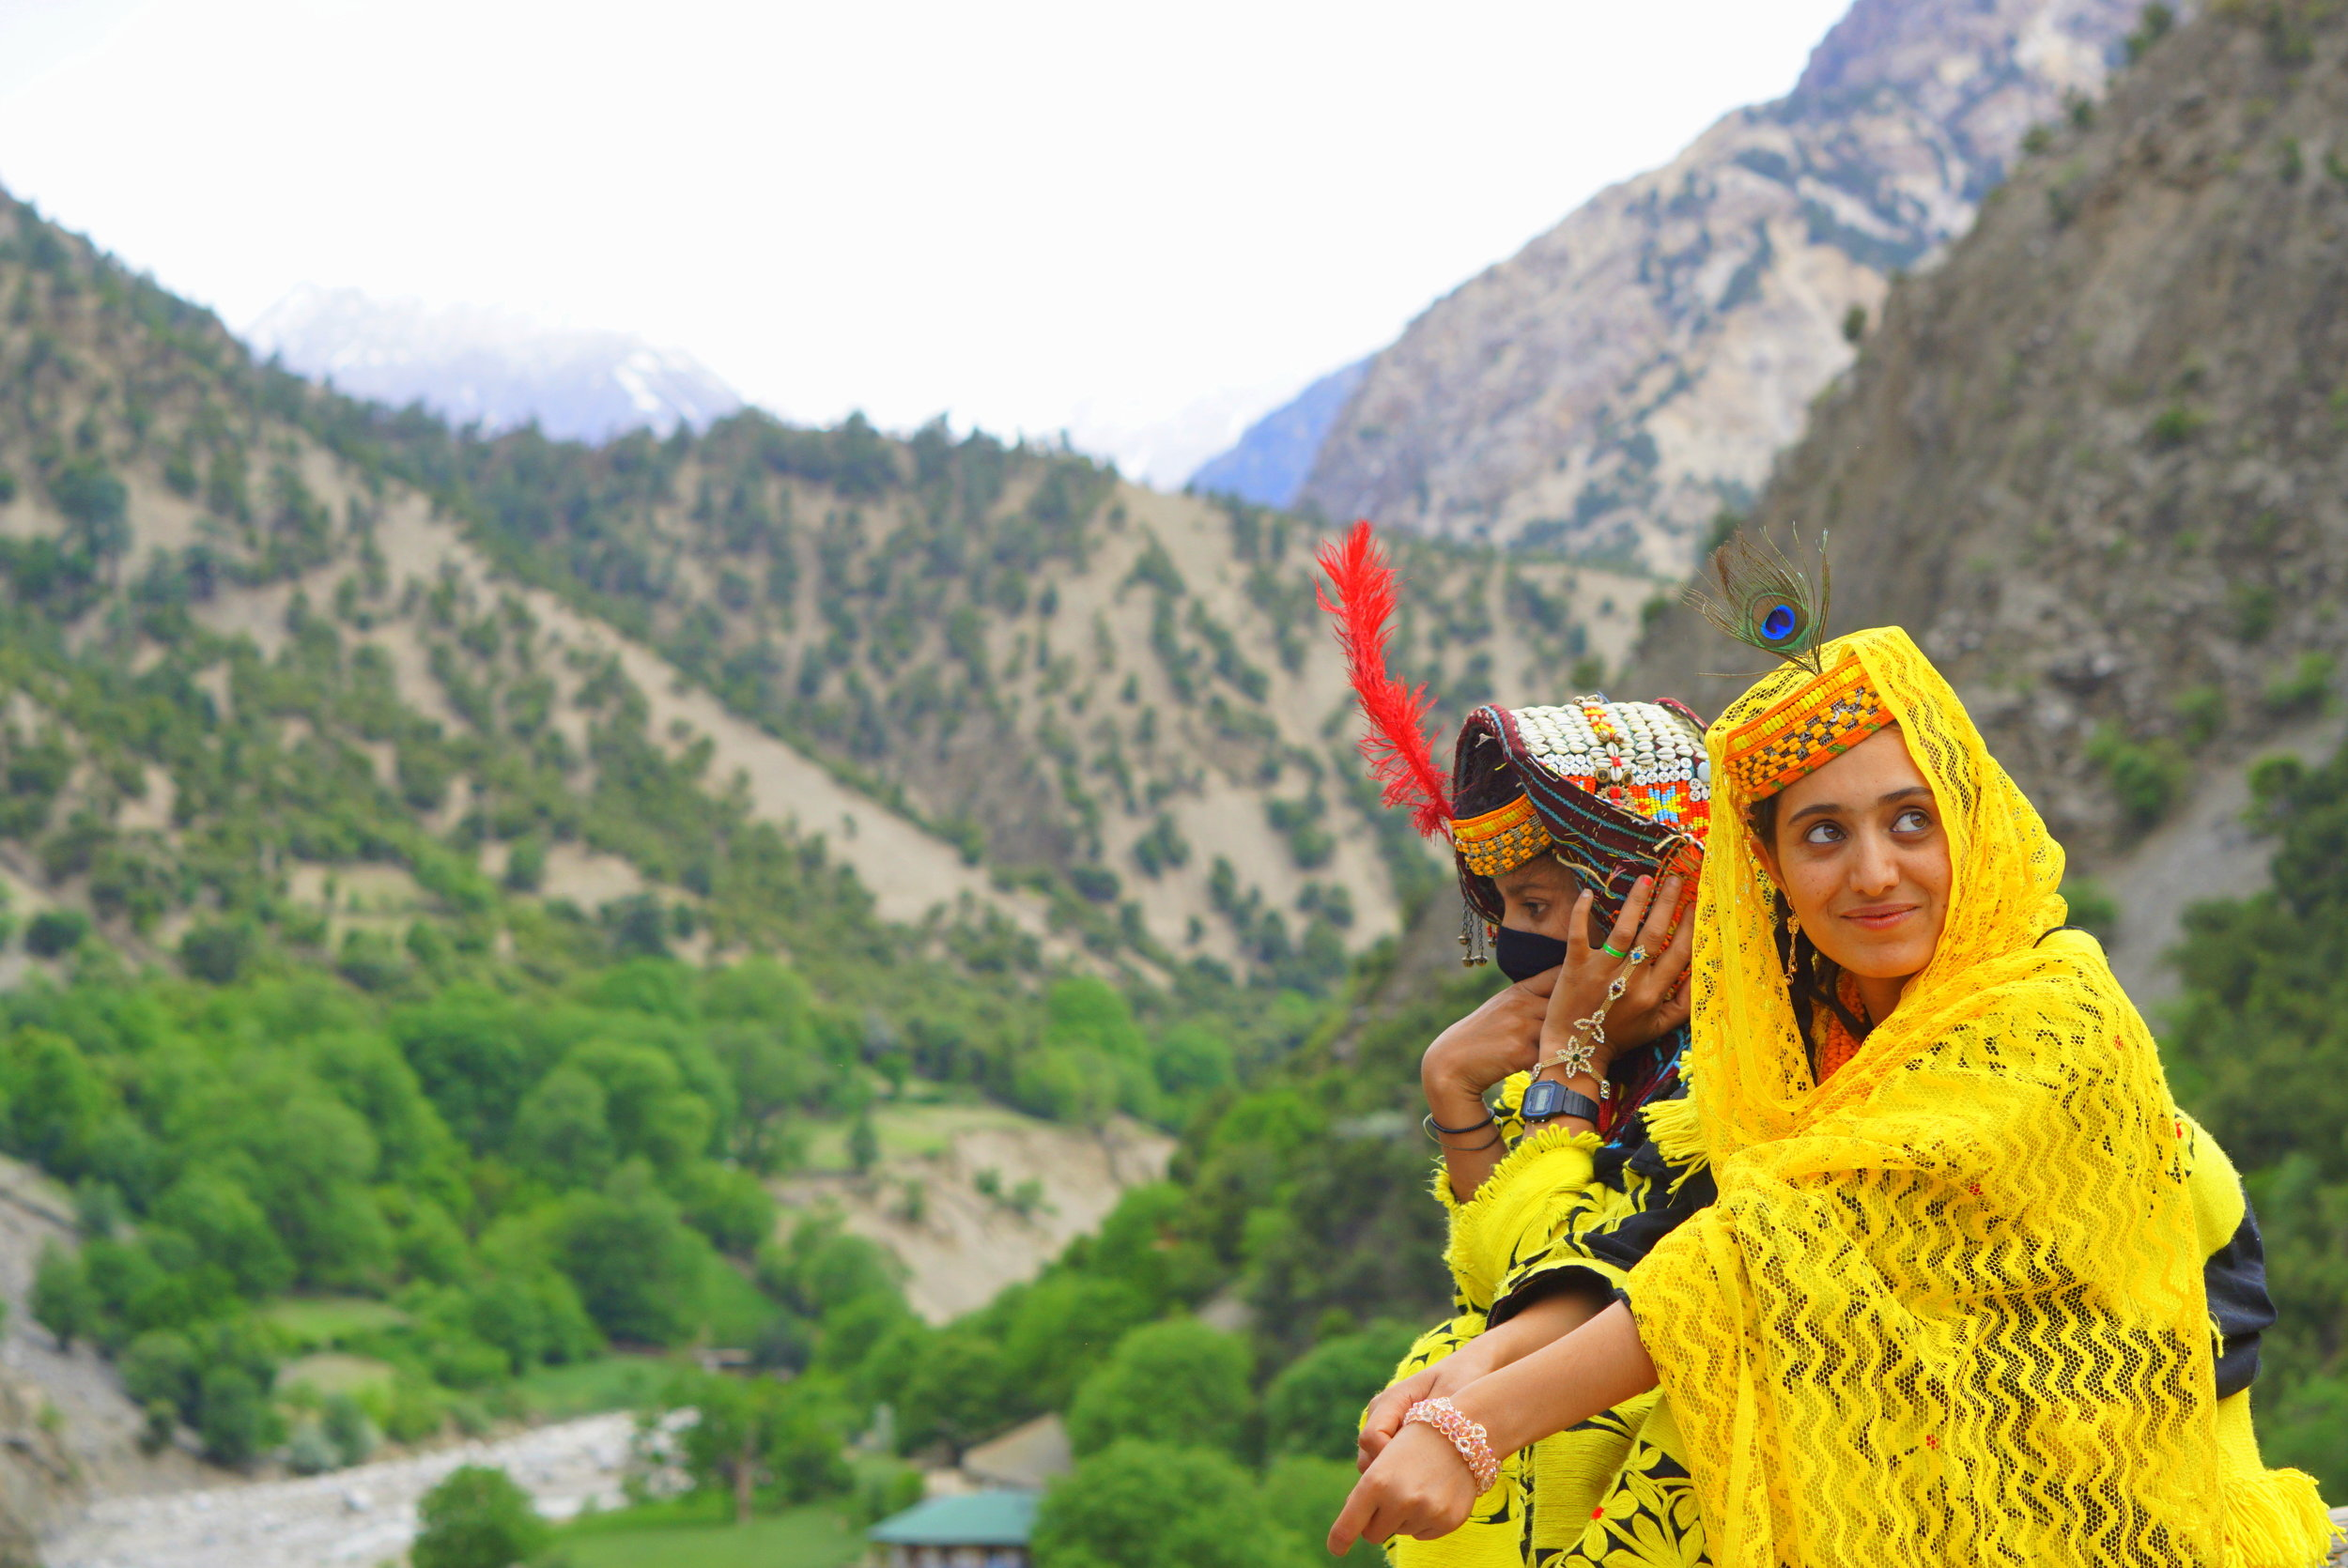 Two Kalashi girls overlook the view in Bamburat village during the annual Chilam Joshi festival in the Hindu Kush region (Omer Imran)